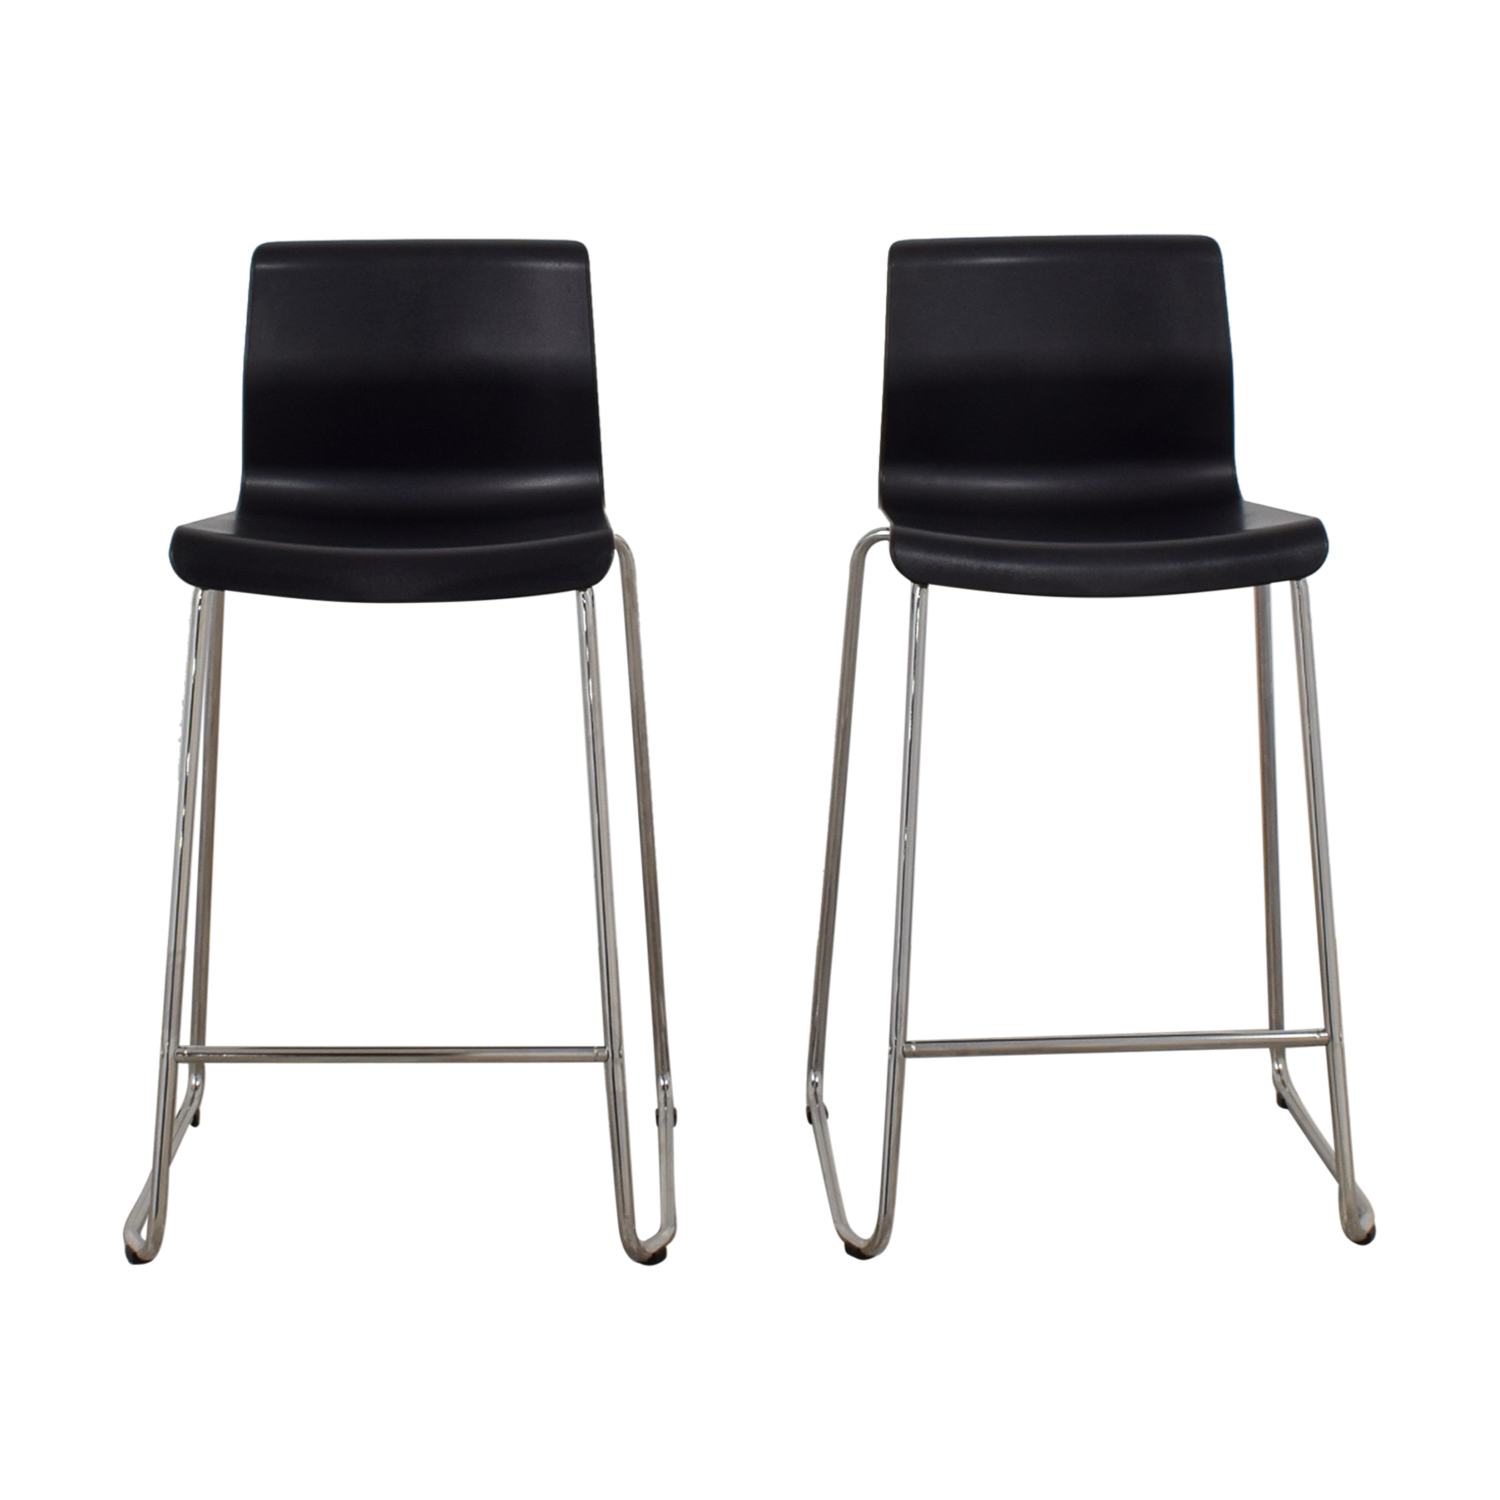 Ikea Black Chair 81 Off Ikea Ikea Black And Metal Bar Stools Chairs